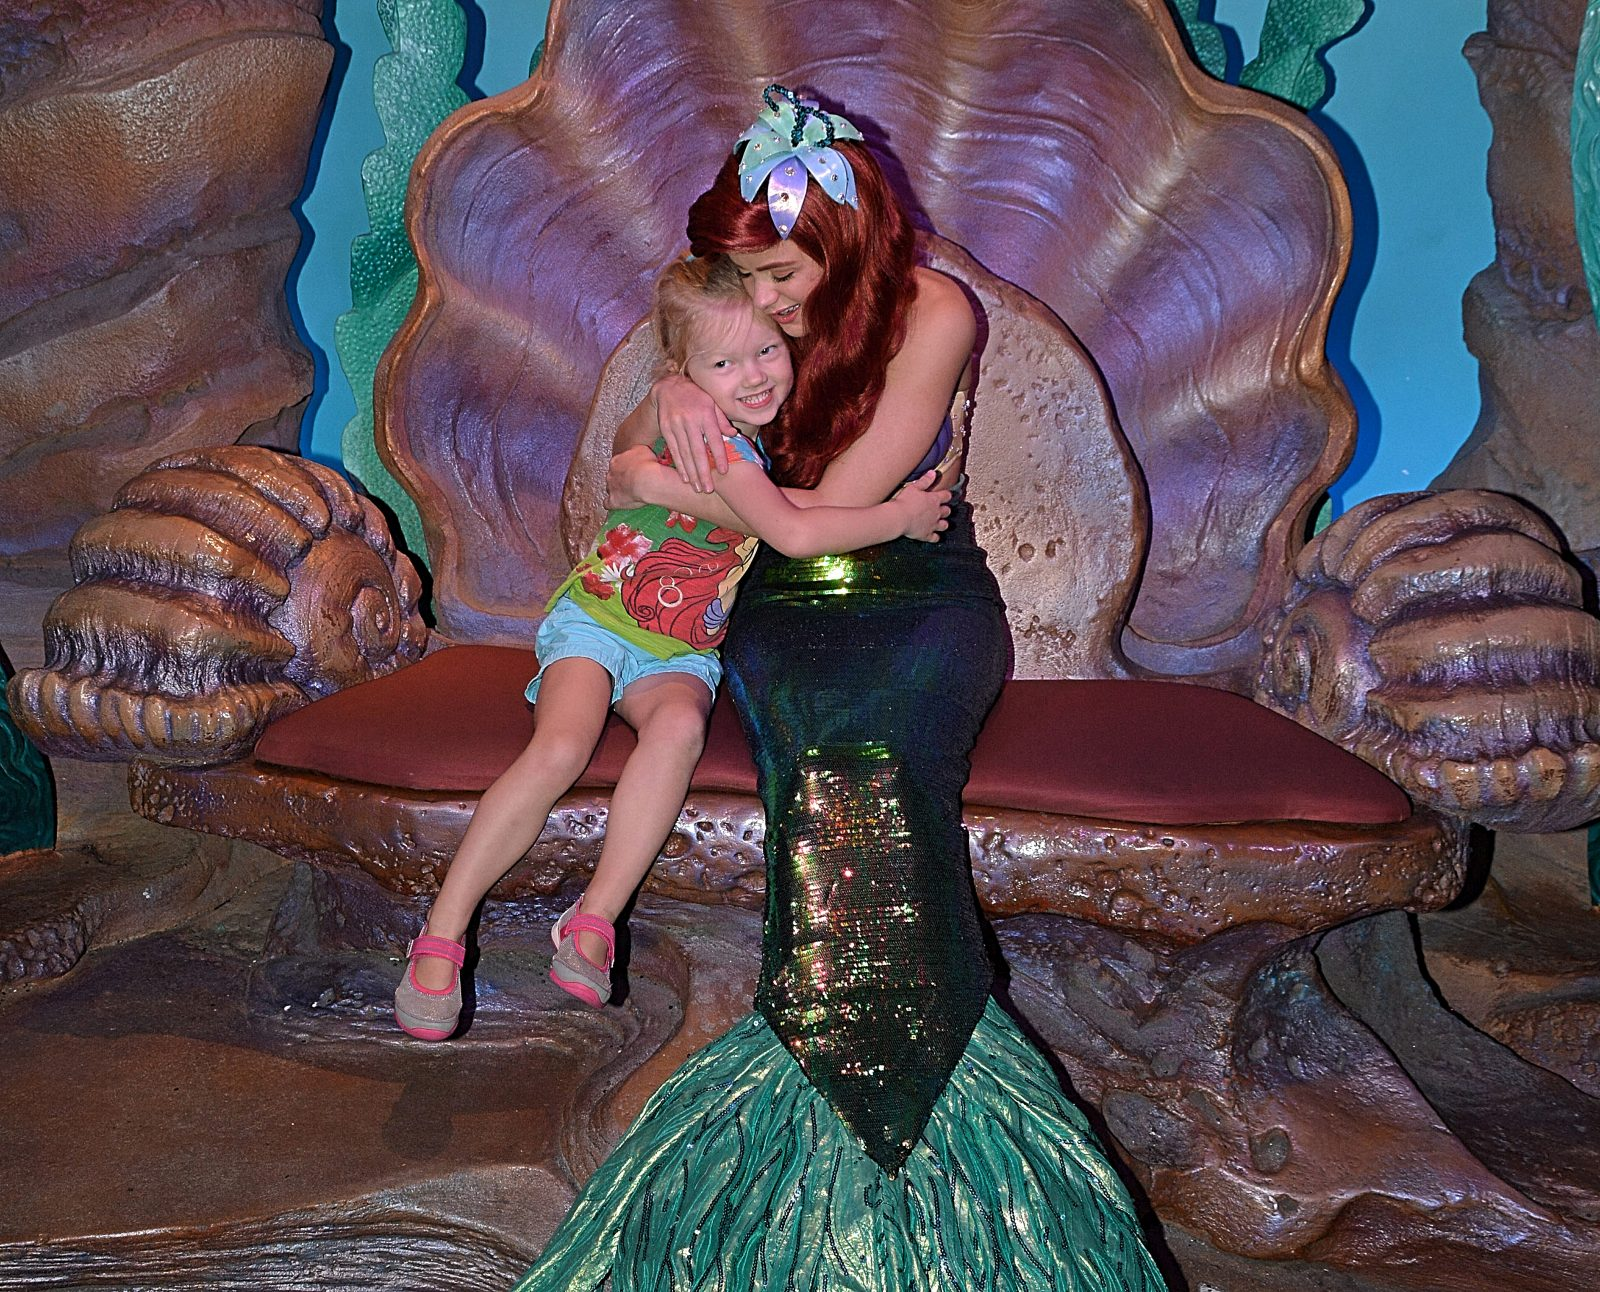 little girl hugging disney character ariel in ariel's grotto